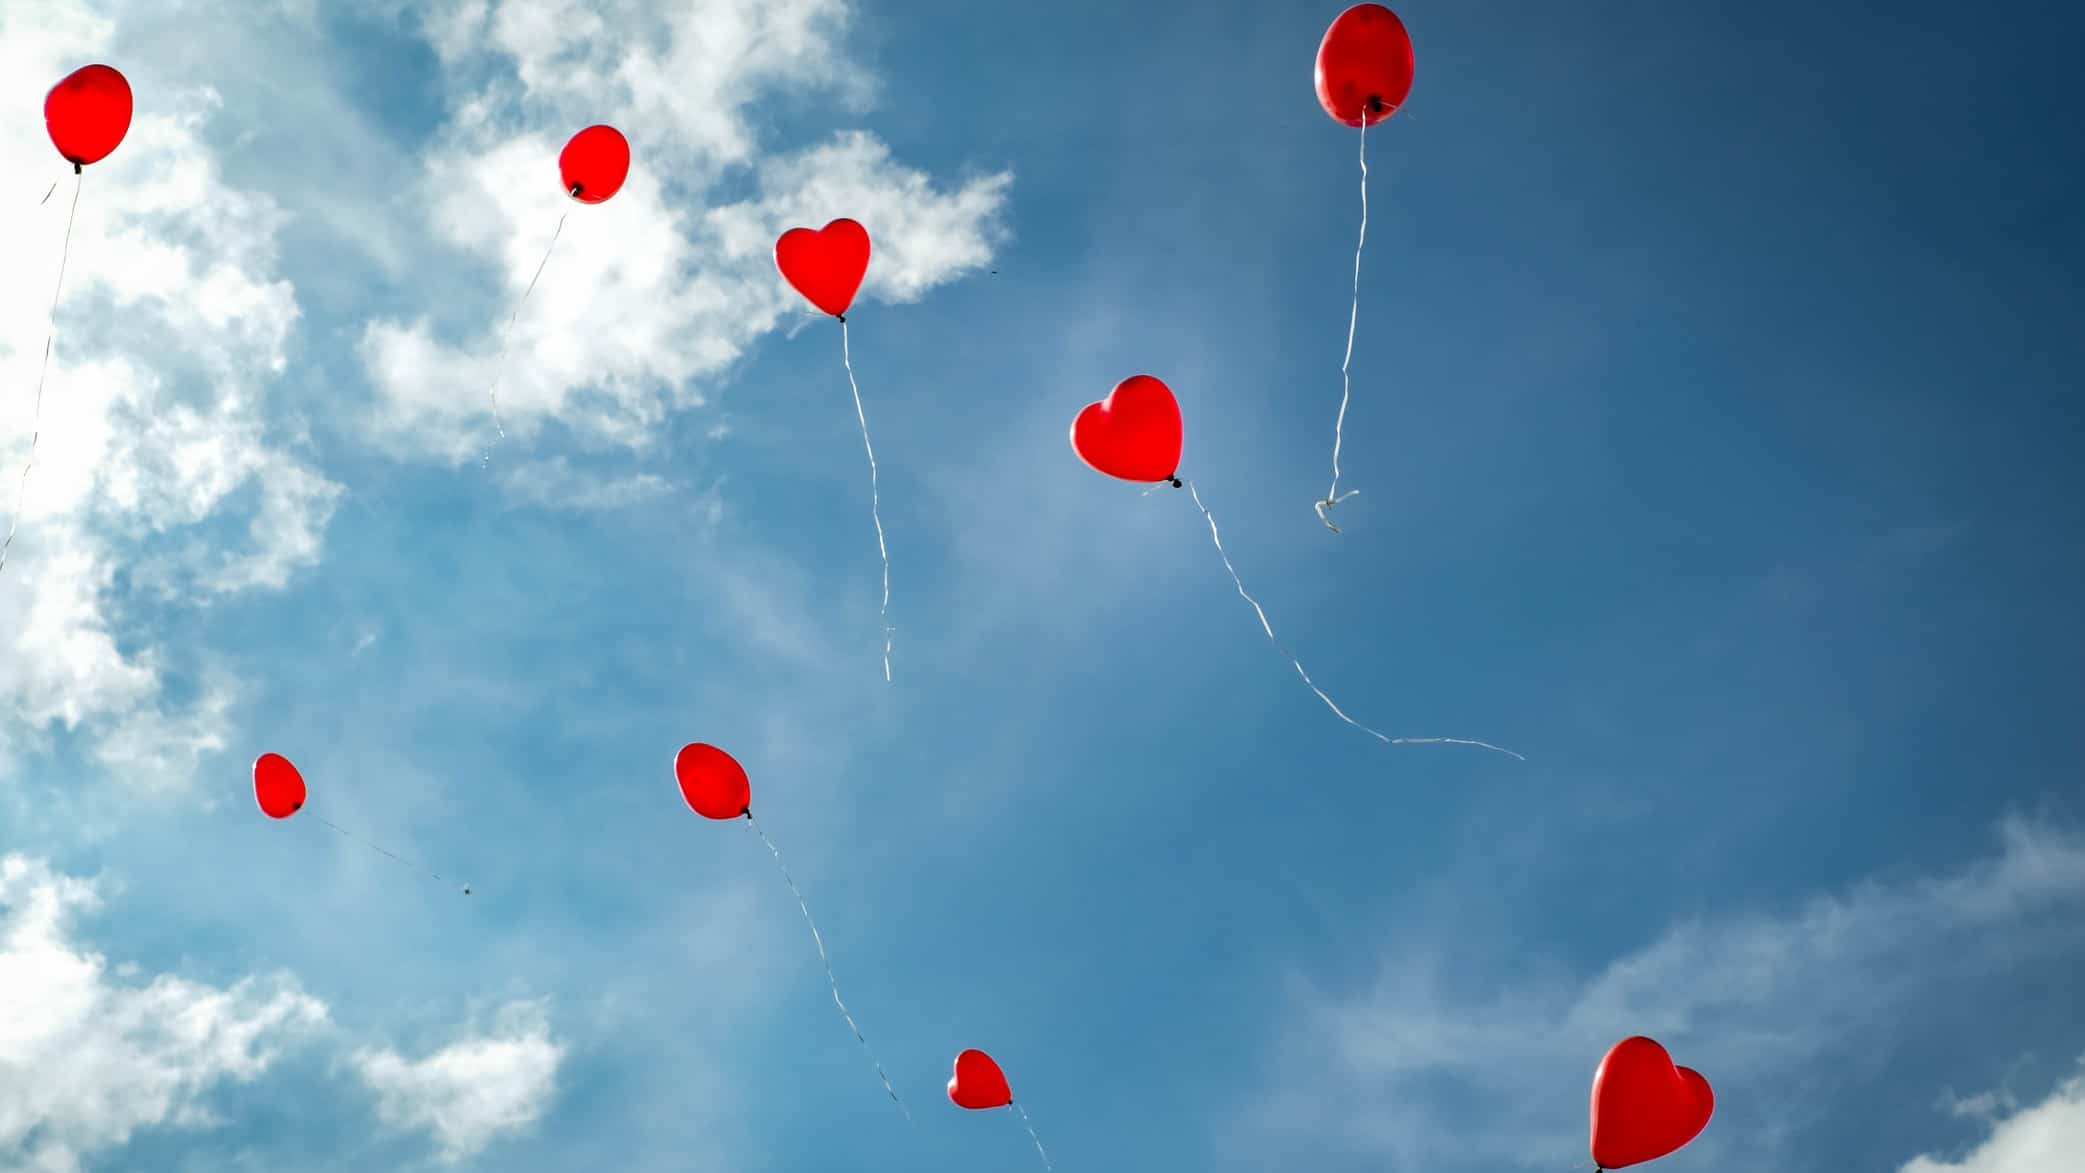 heart shaped balloons flying in the air representing Cardiex share price